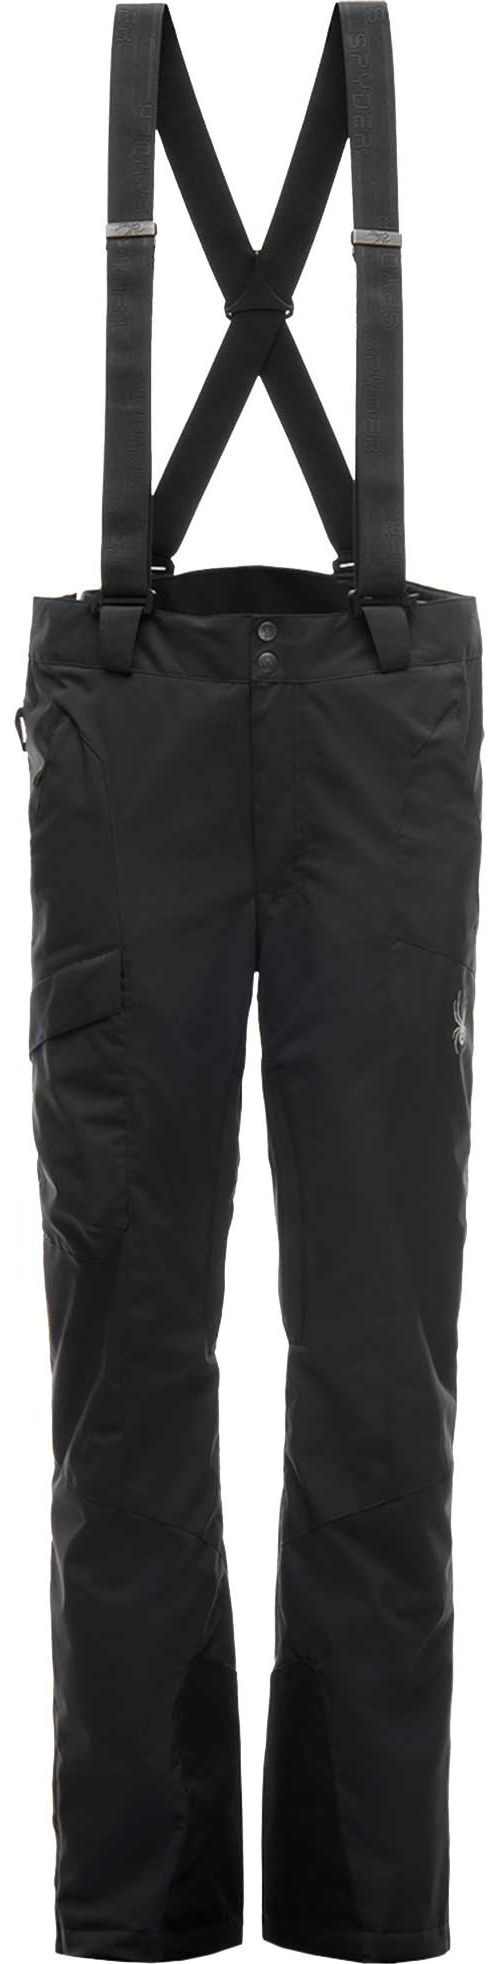 Spyder Men s Sentinel Tailored Pants  1187e1375